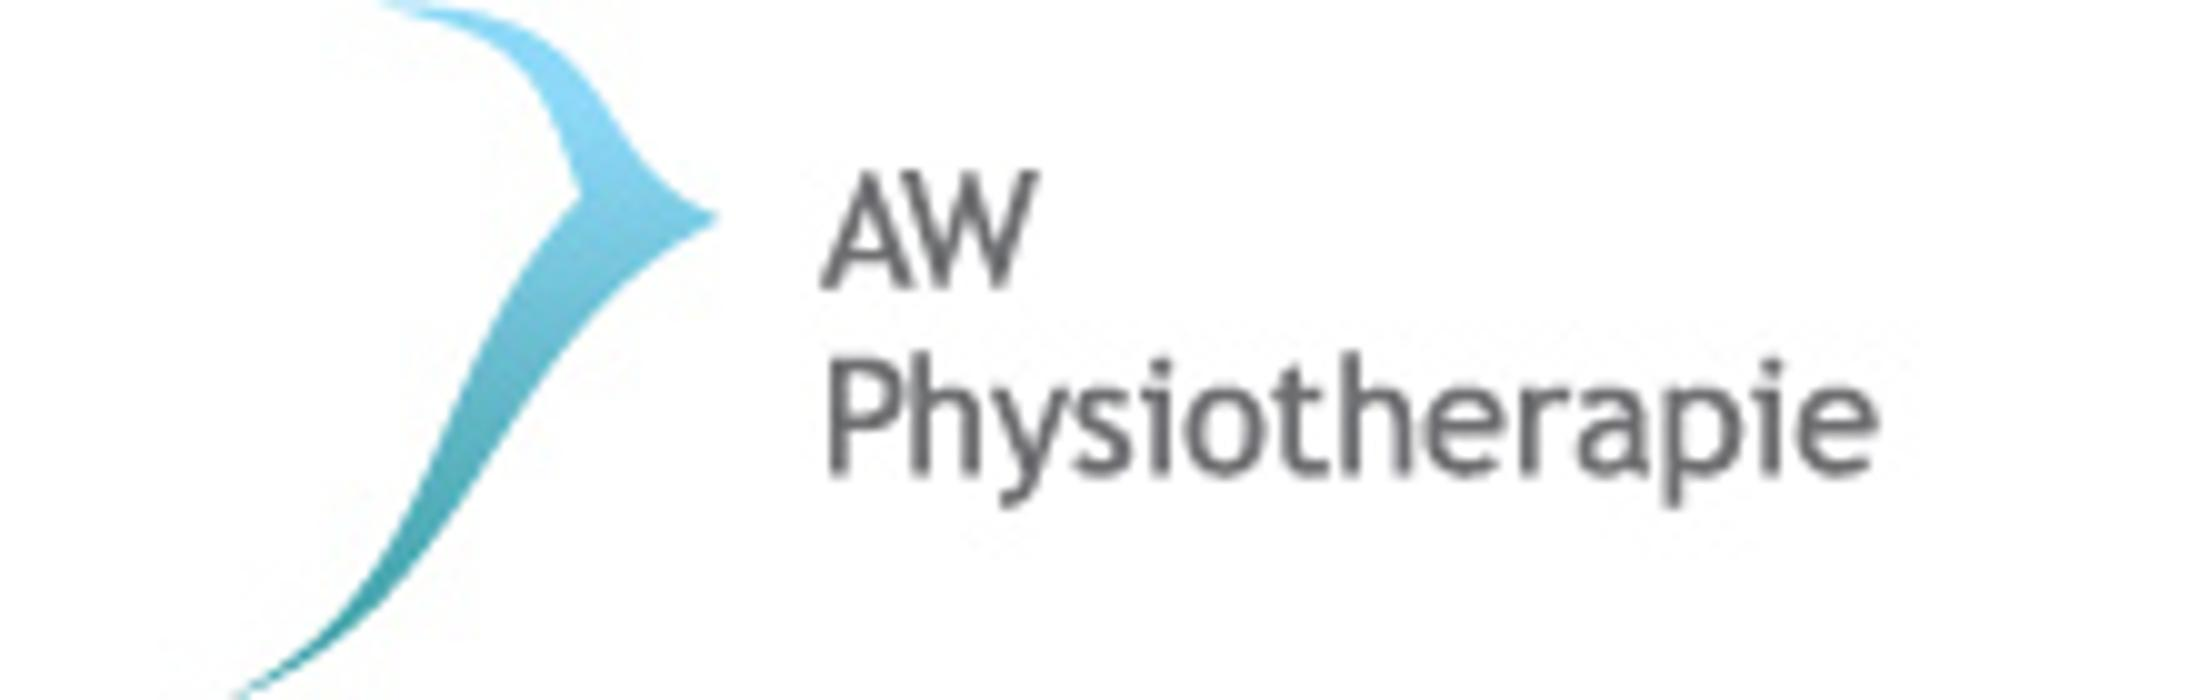 Bild zu AW Physiotherapie in Dreieich